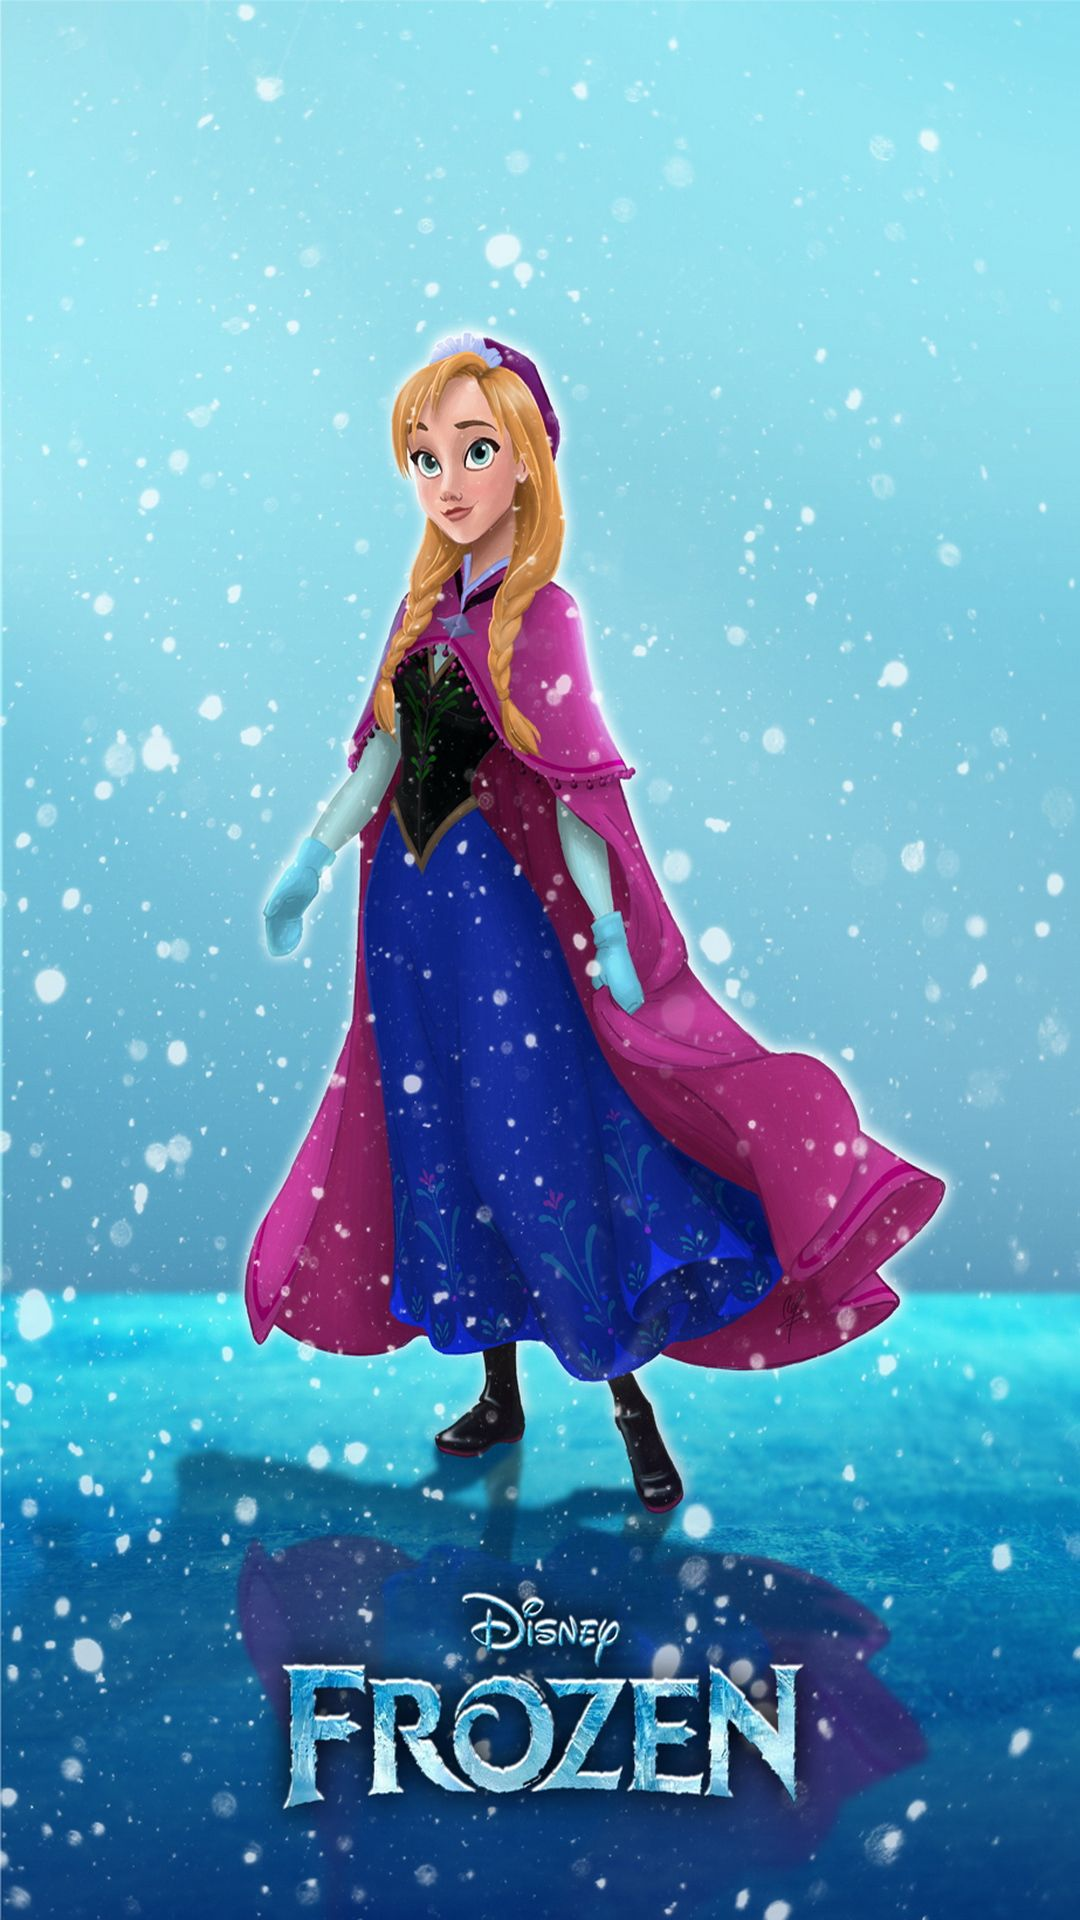 frozen mobile phone wallpaper 1080x1920 hd 2 | frozen mobile